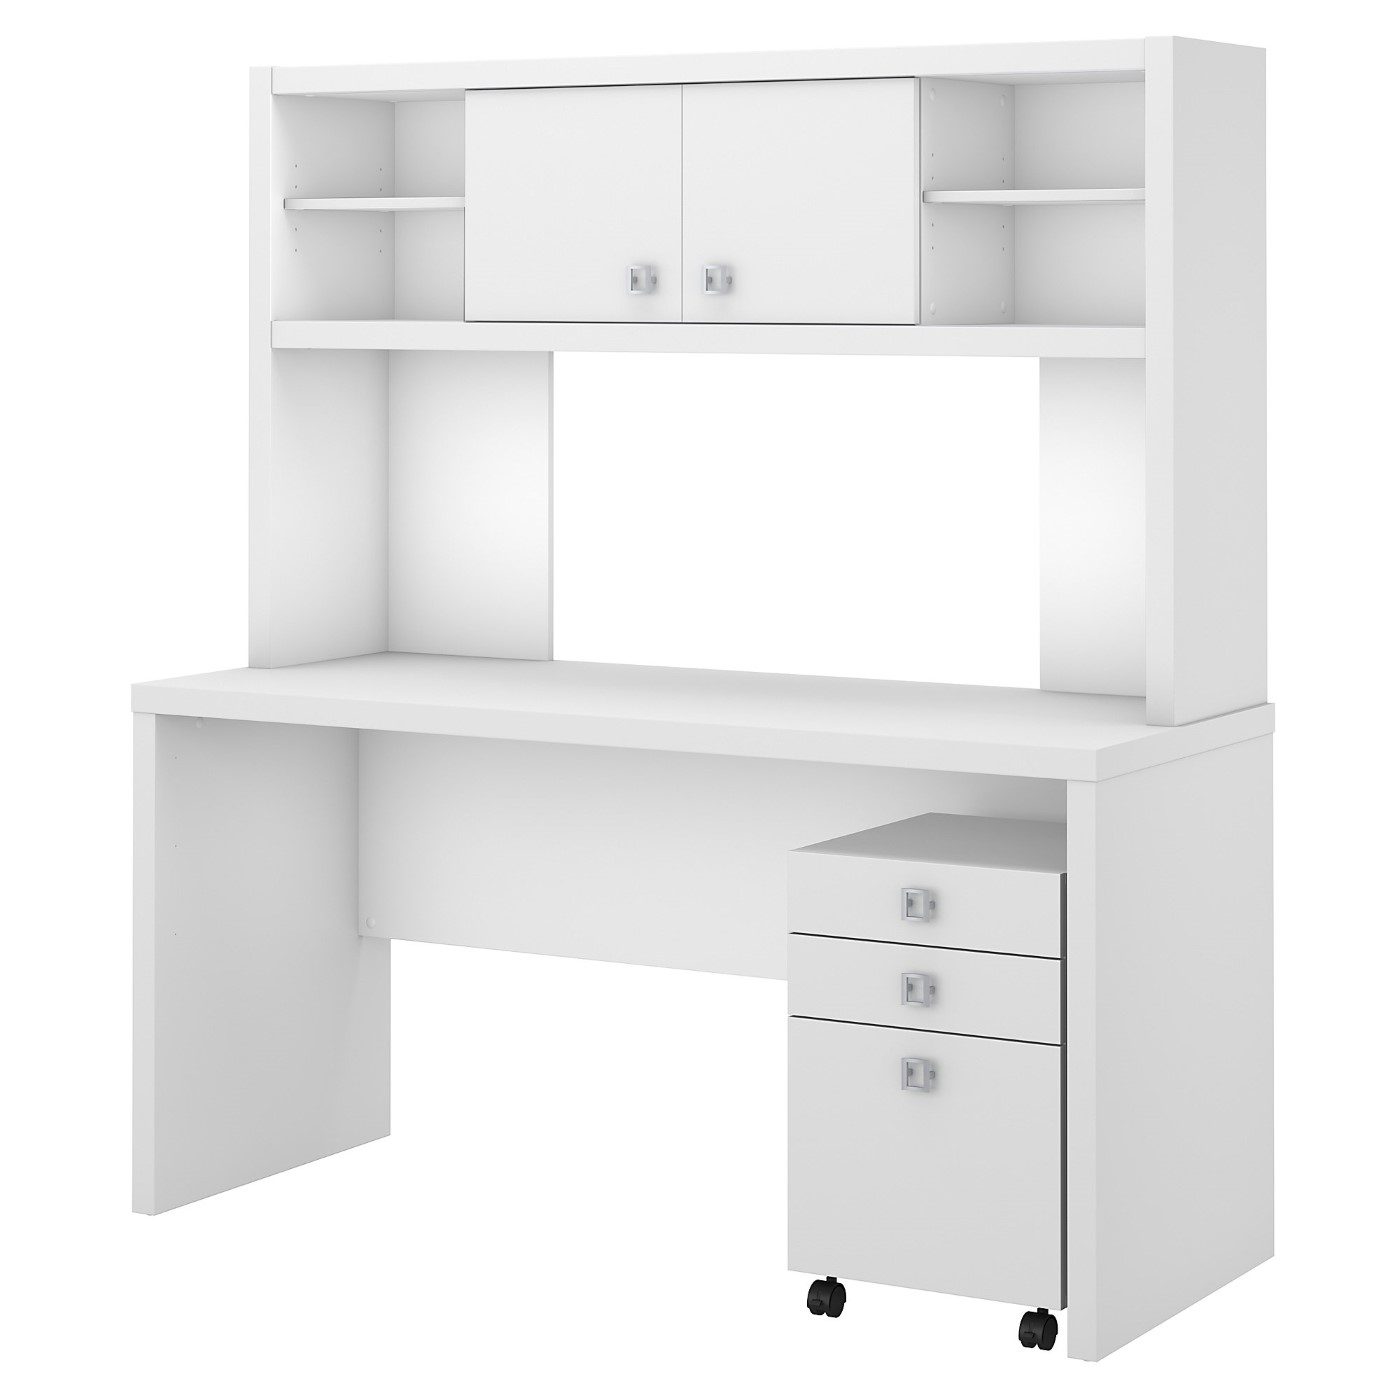 OFFICE BY KATHY IRELAND� ECHO CREDENZA DESK WITH HUTCH AND MOBILE FILE CABINET. FREE SHIPPING